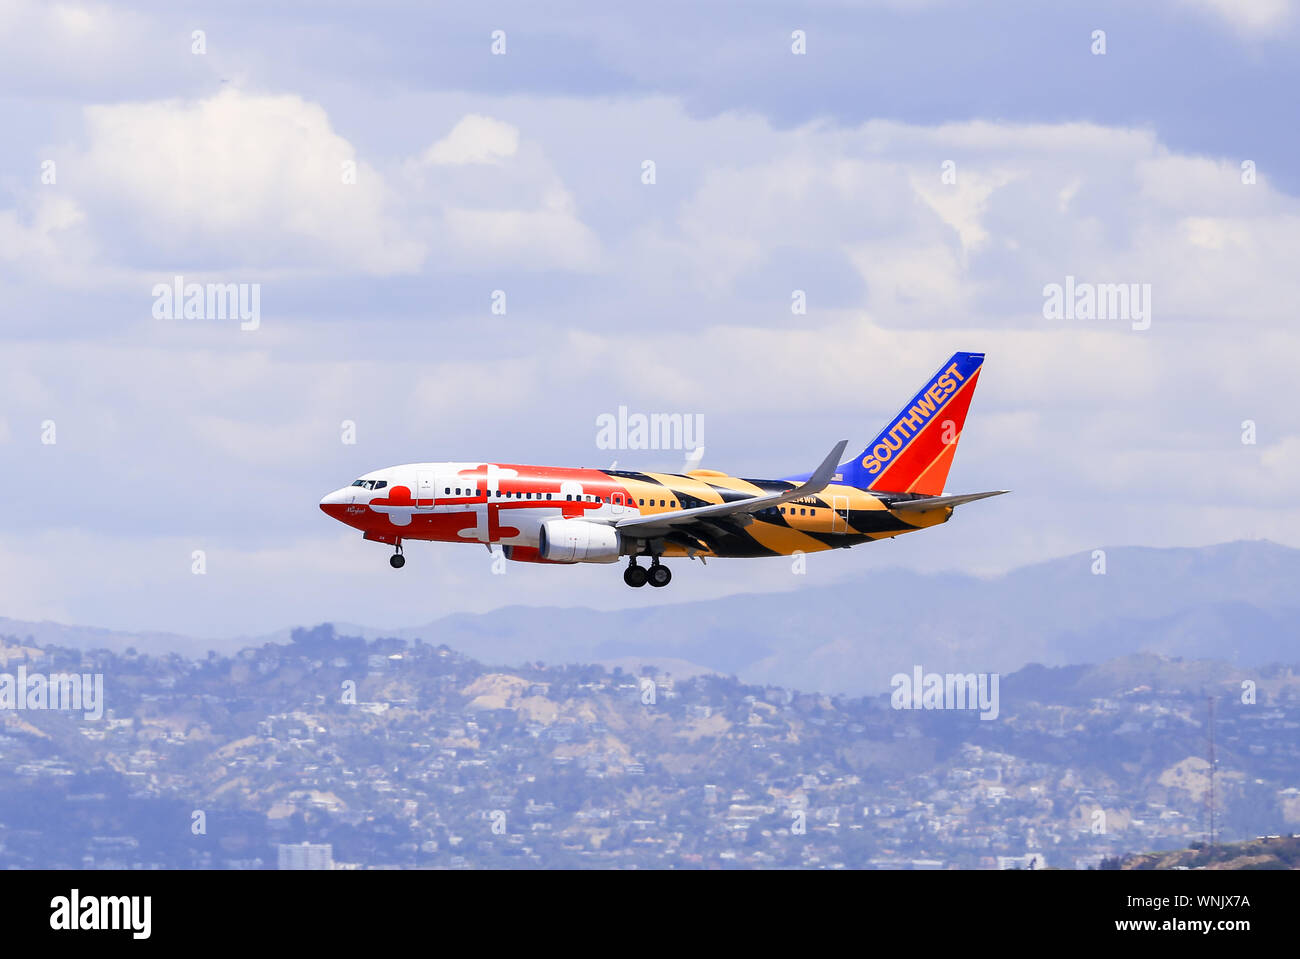 Los Angeles, California, USA - May 22, 2019: A Southwest Boeing 737 (Maryland One) lands at the Los Angeles International Airport (LAX). Stock Photo